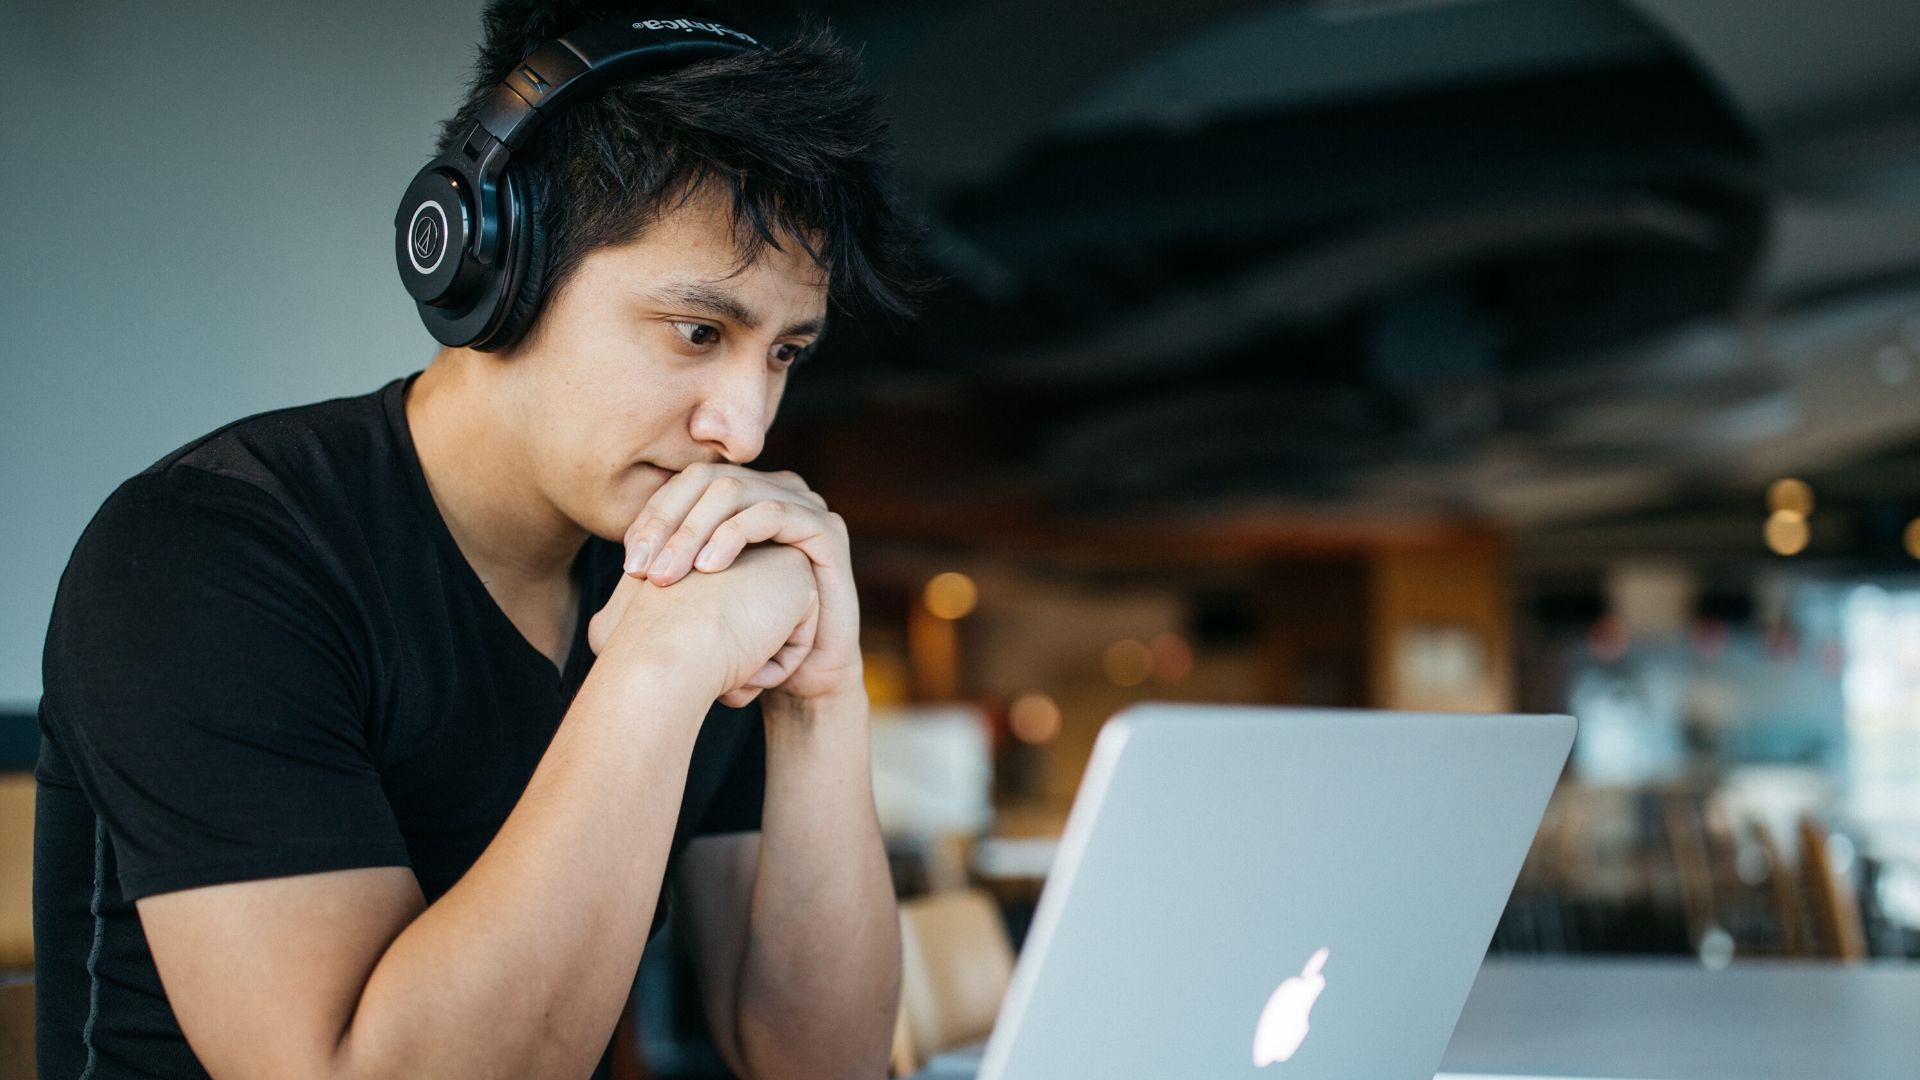 accessible video calls - a man sits in front of his laptop screen wearing headphones and a black tshirt, his hands are together with his chin resting on them